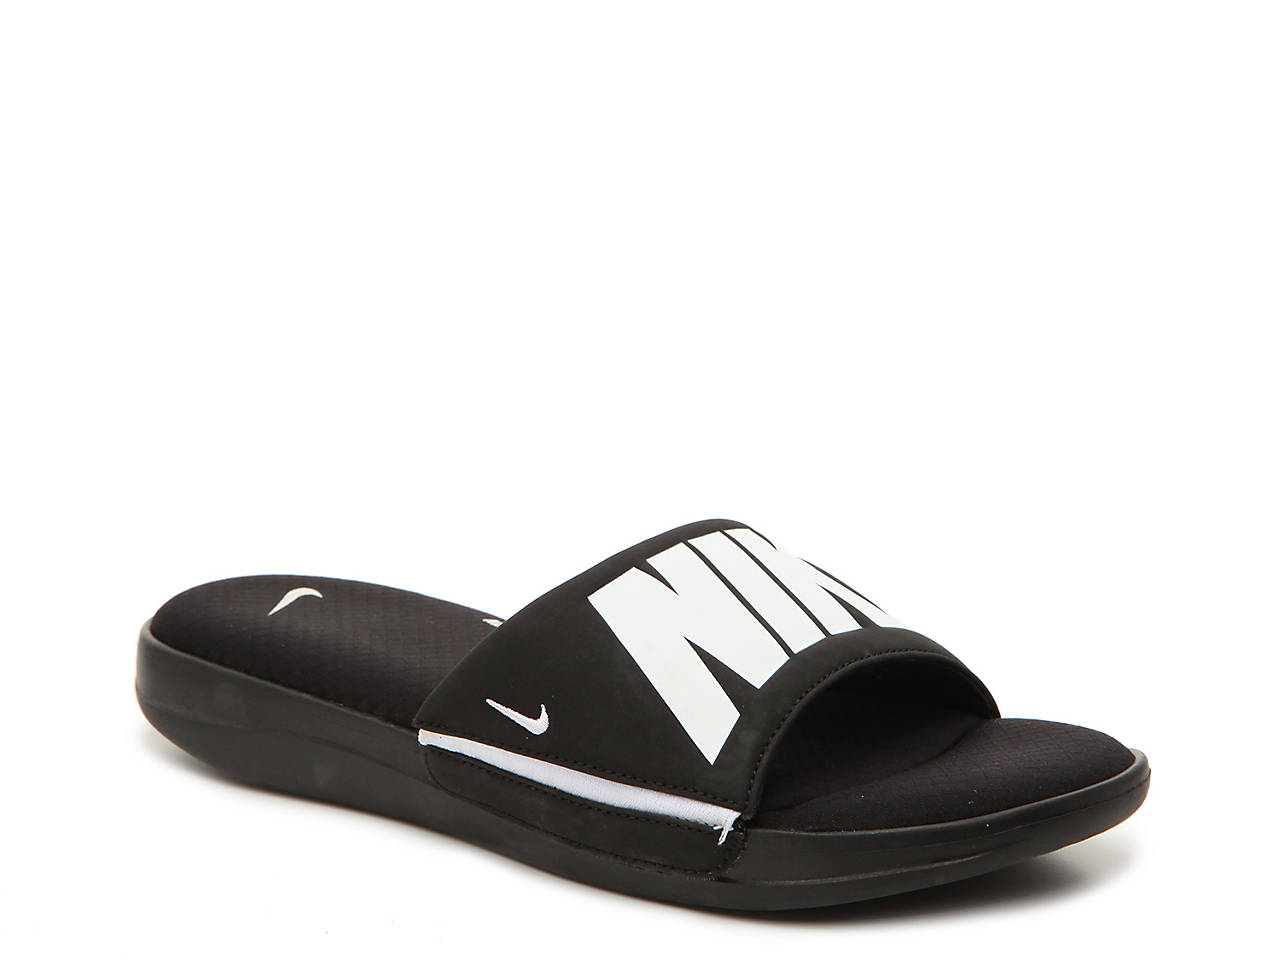 eec23d46527c Nike Ultra Comfort 3 Slide Sandal - Men s Men s Shoes